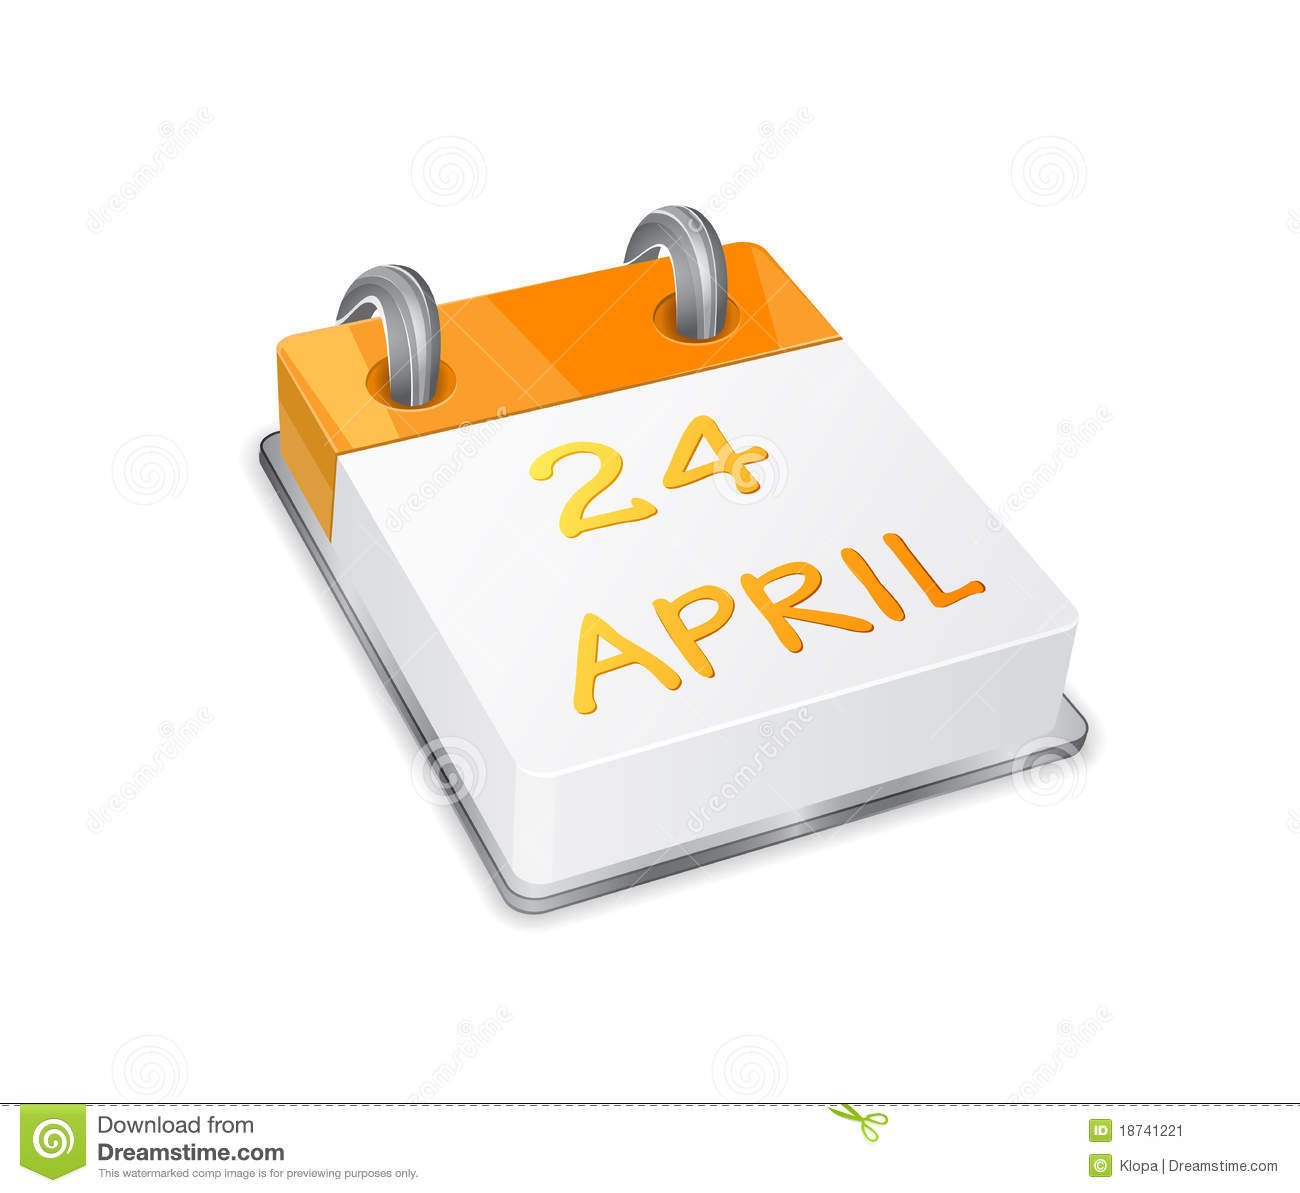 Xs Calendar April : Orange calendar icon on easter april th stock vector